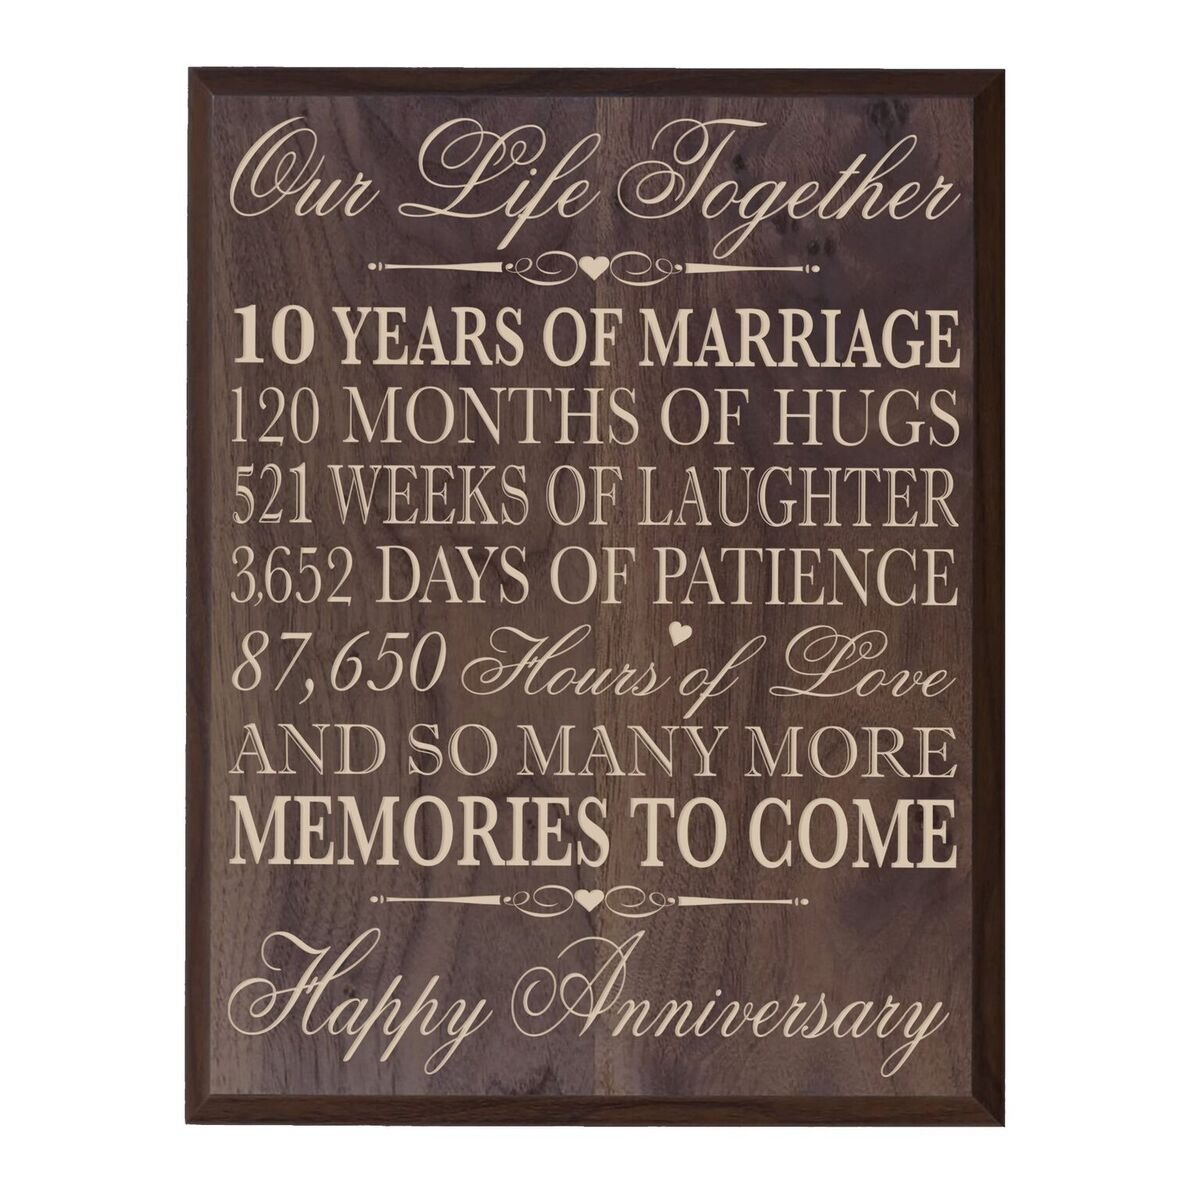 LifeSong Milestones 10th Wedding Anniversary Wall Plaque Gifts for Couple, 10th for Her,10th Wedding for Him 10.75'' W X 13'' H Wall Plaque (Grand Walnut) by LifeSong Milestones (Image #1)